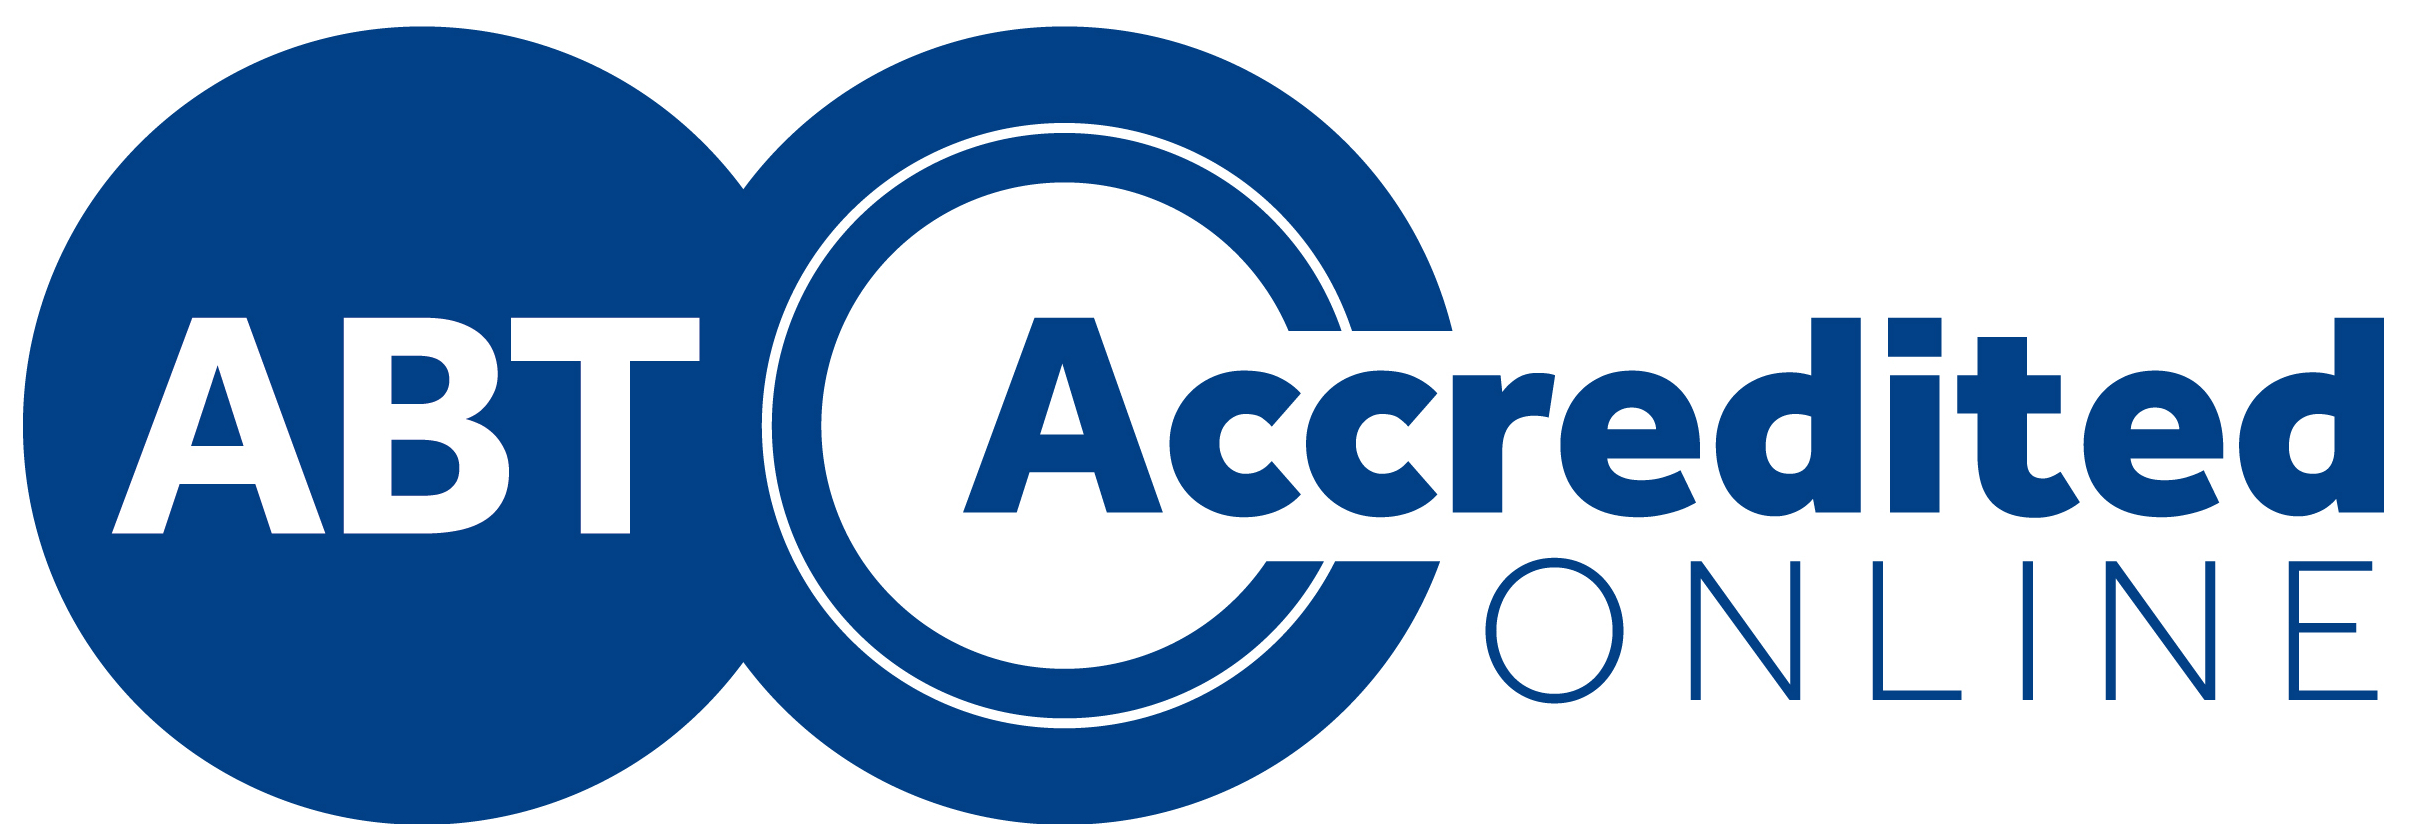 ABT Accredited Online